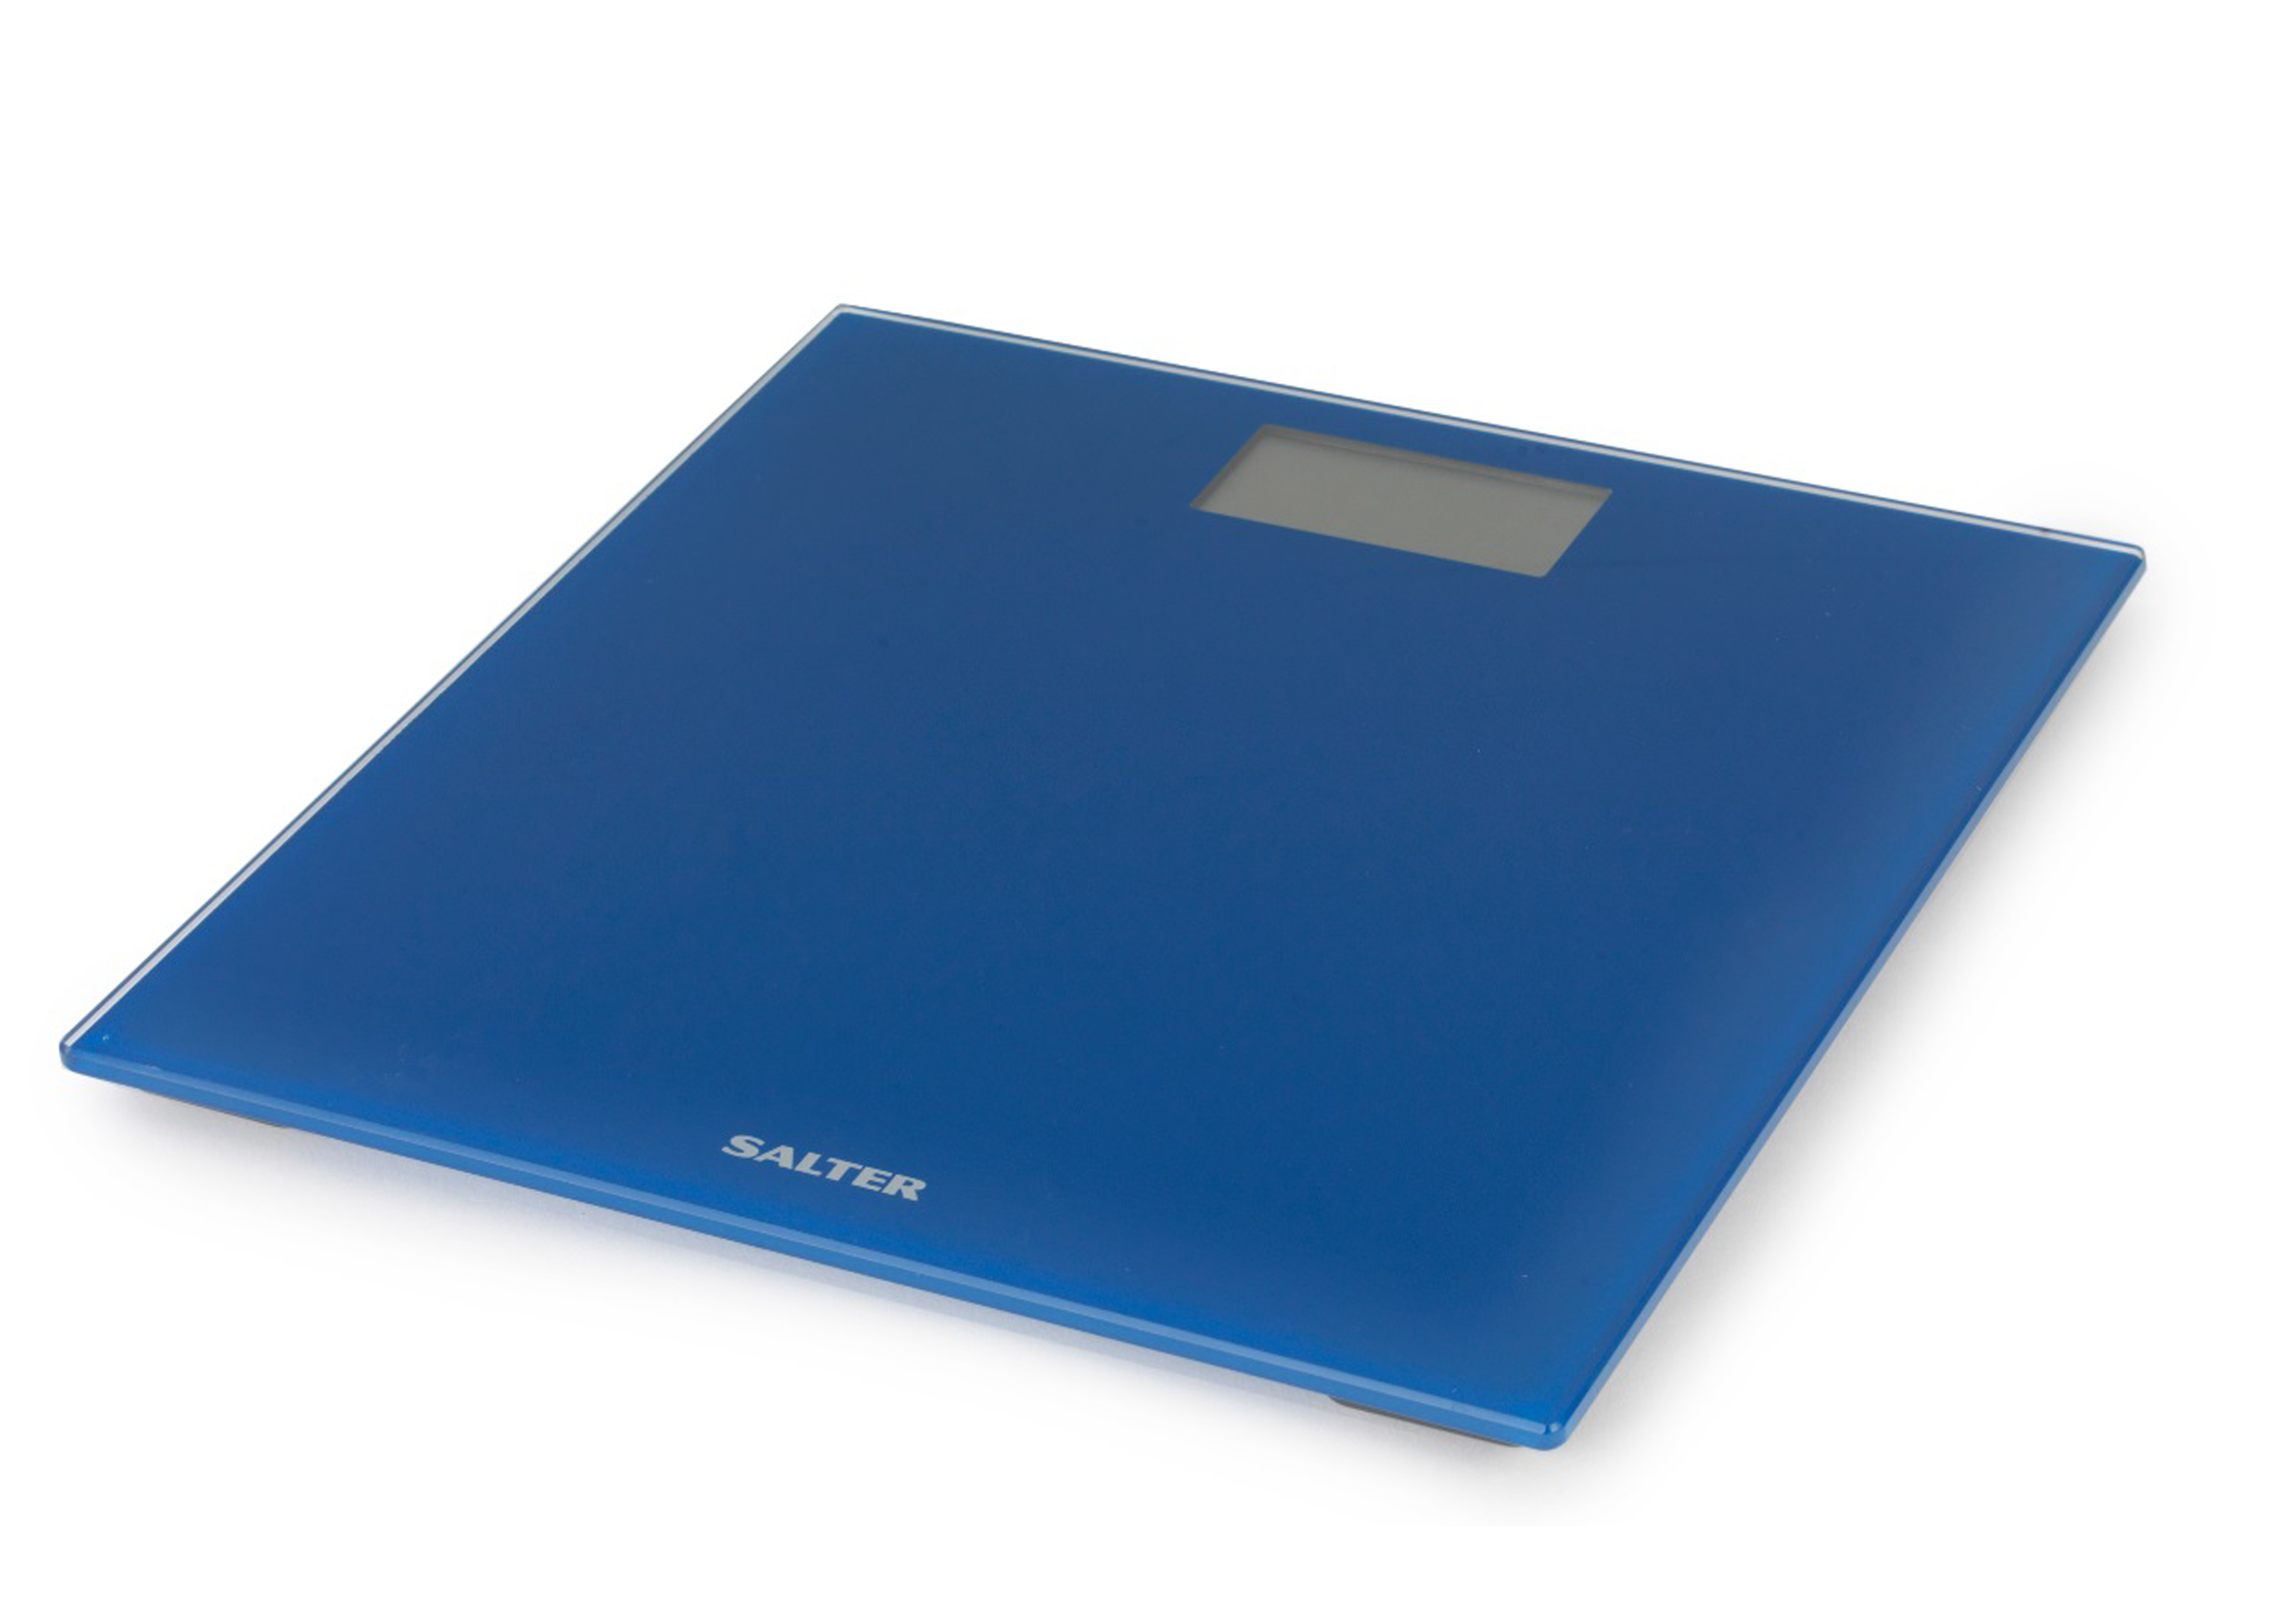 Salter 9069bl3r Ultra Slim Glass Electronic Scale Blue Bathroom Accessories No1brands4you